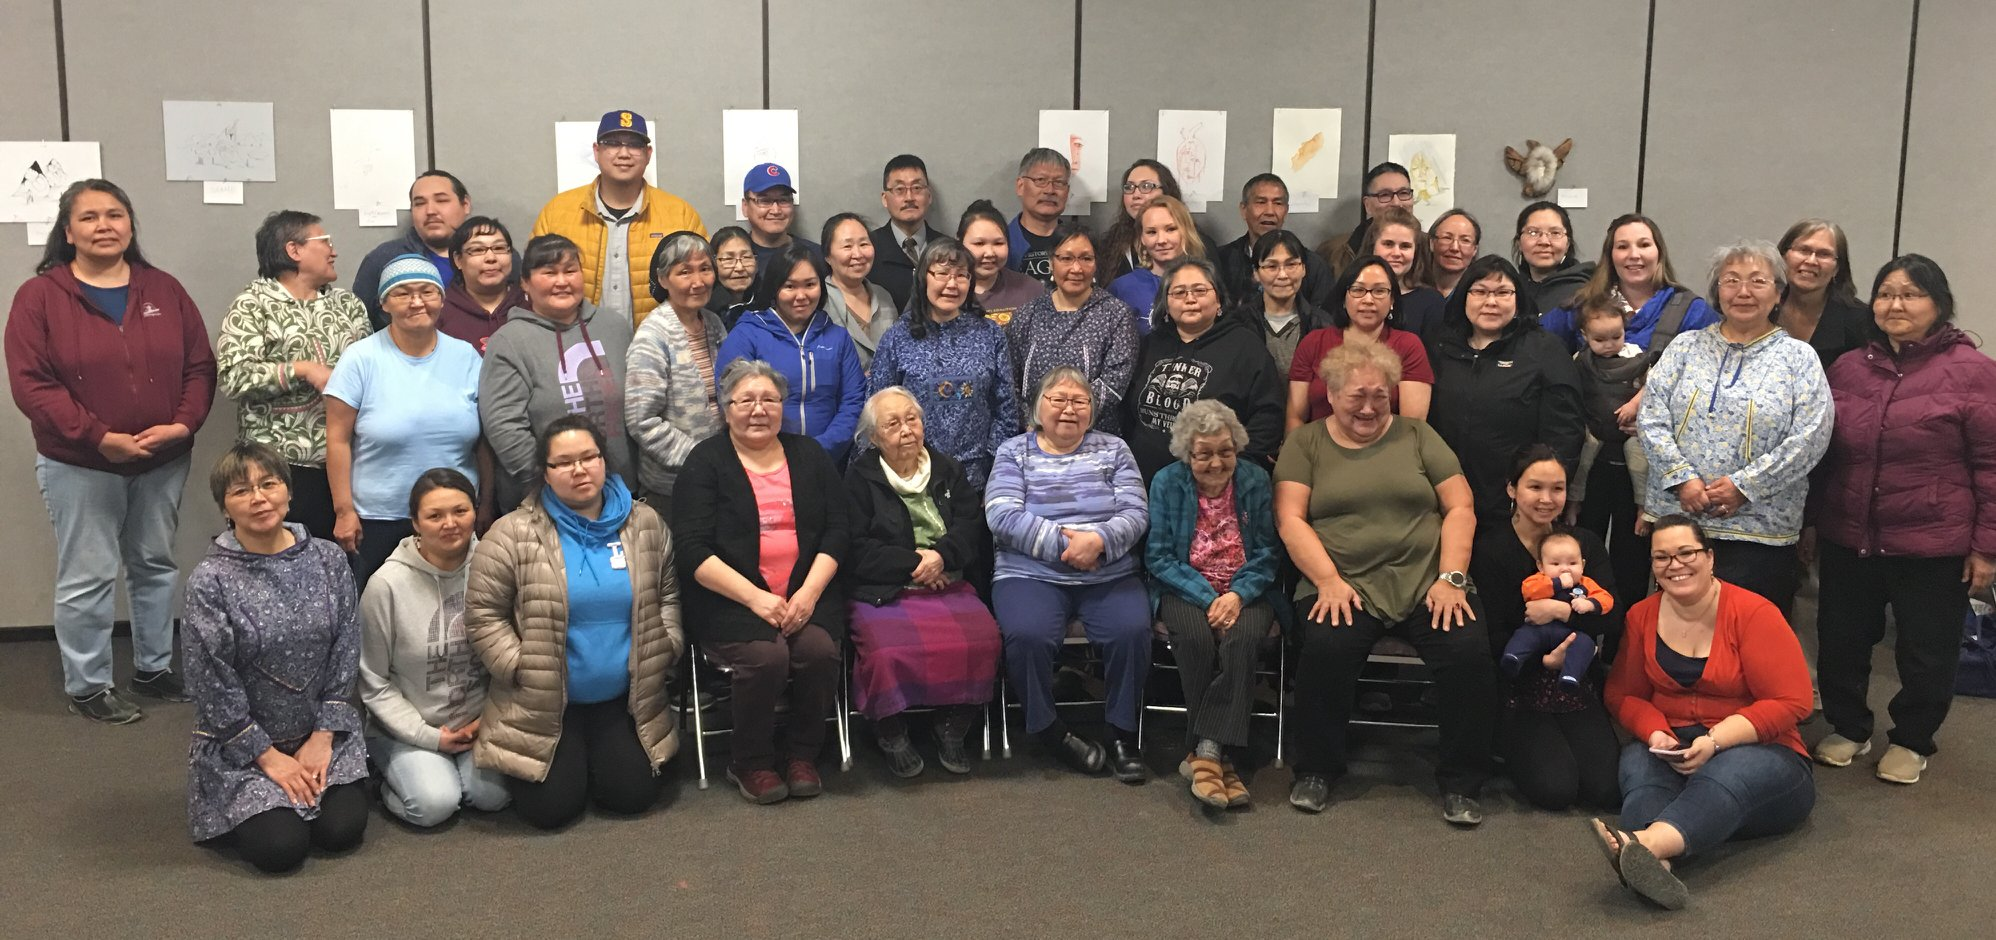 Rural Human Services (RHS) and Human Service (HUMS) AAS students celebrate with their instructional Elders